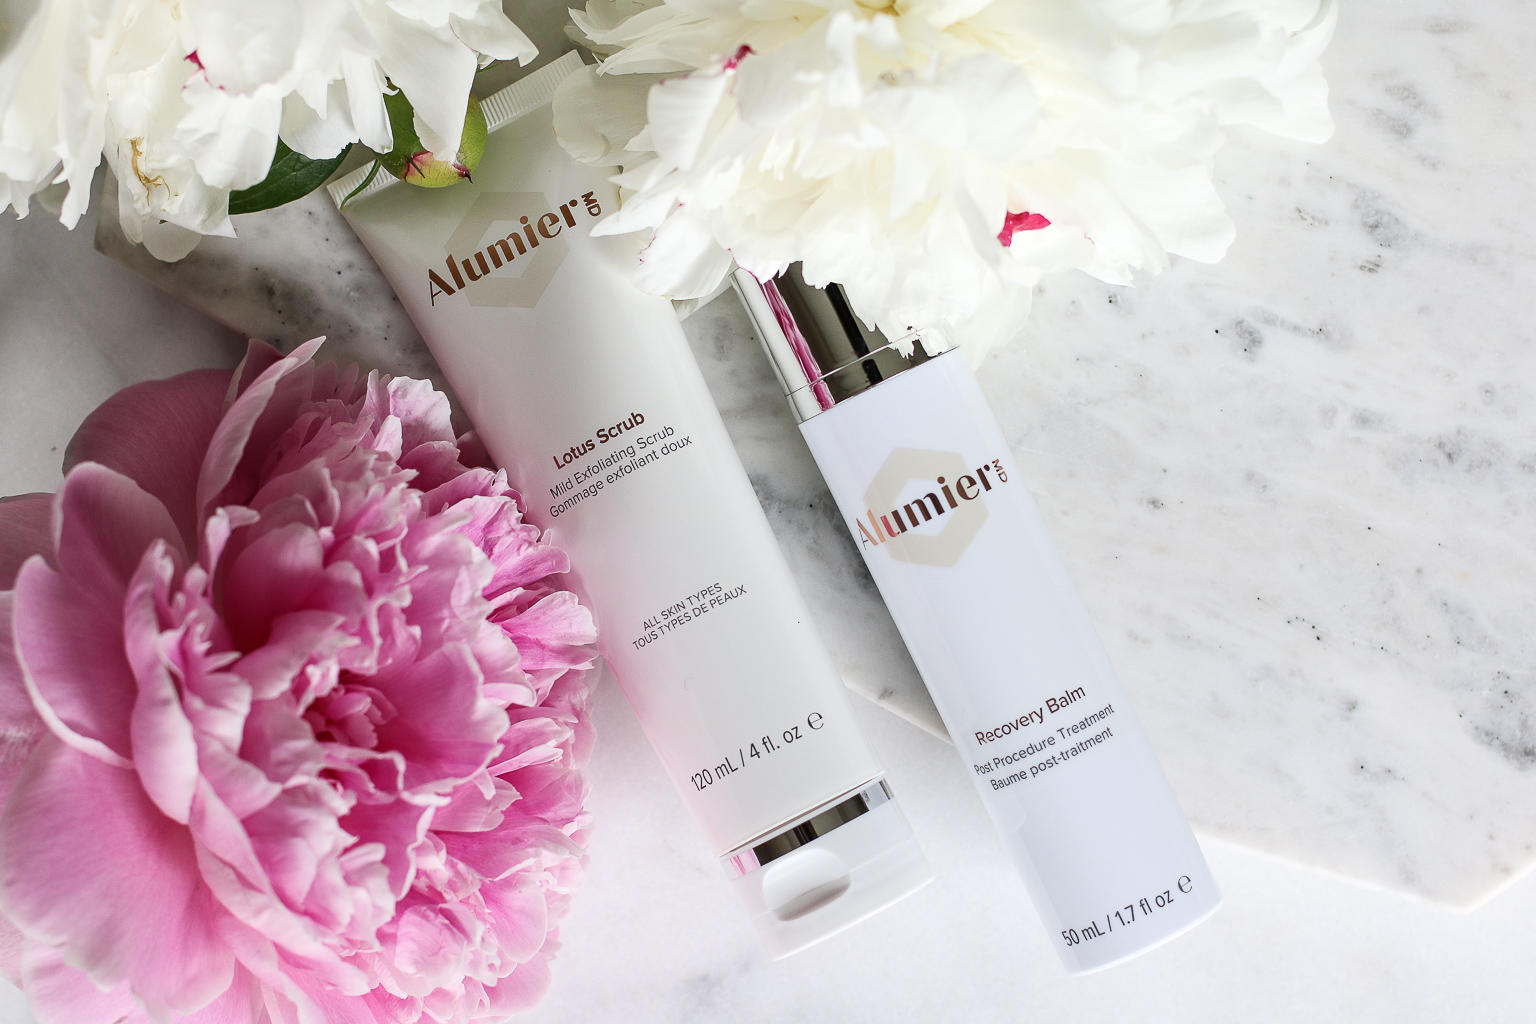 How To Care For Your Skin In Between MediSpa Treatments - AlumierMD Recovery Balm and Lotus Scrub | Style Domination by Dominique Baker